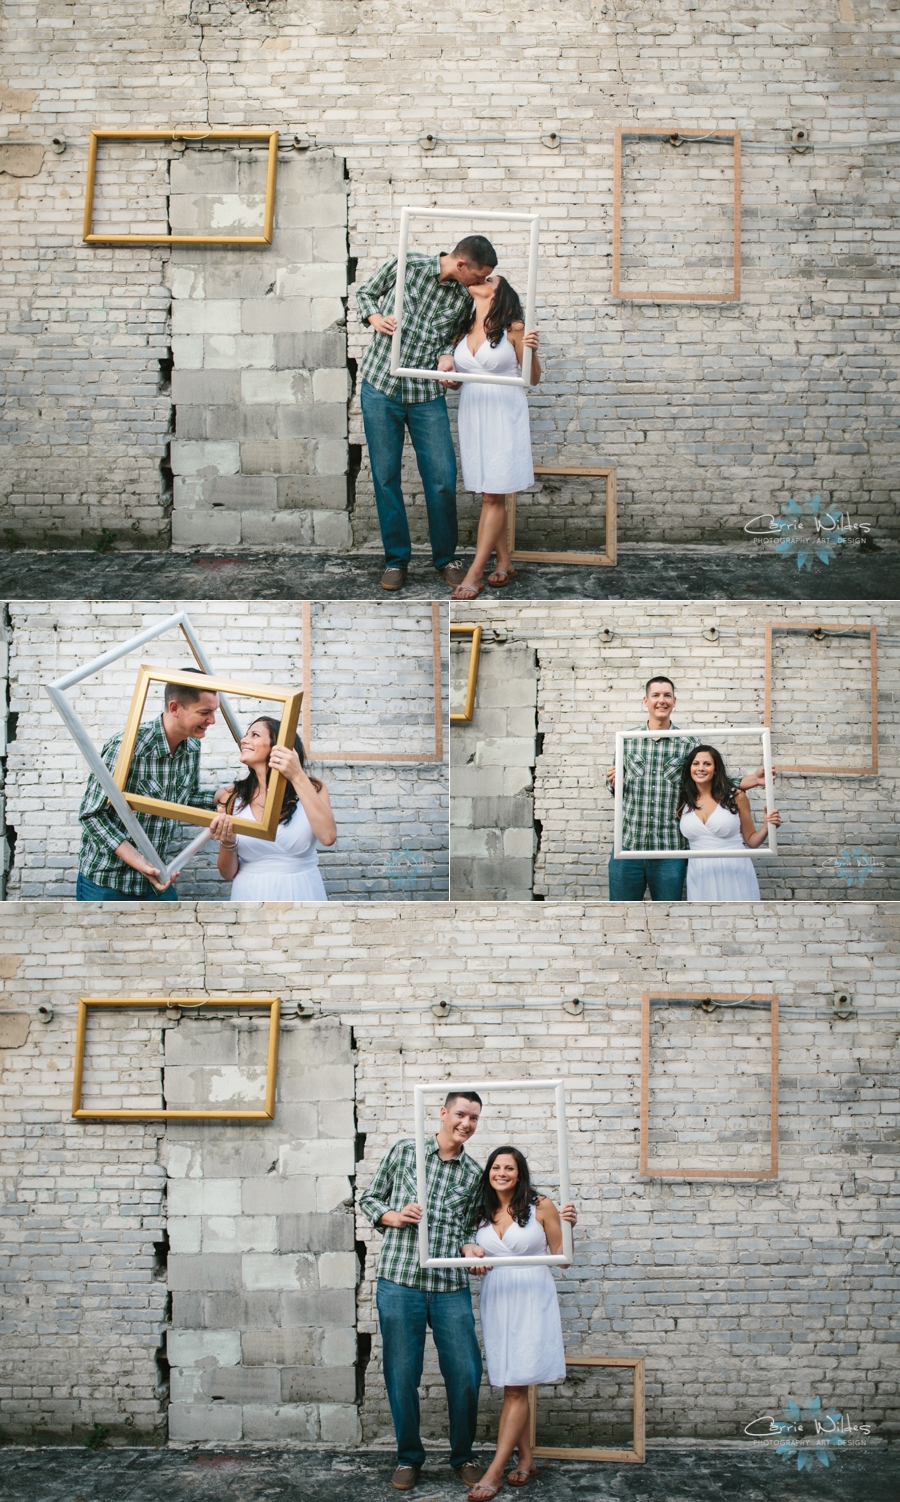 7_11_13 Ybor Engagement Session_0004.jpg